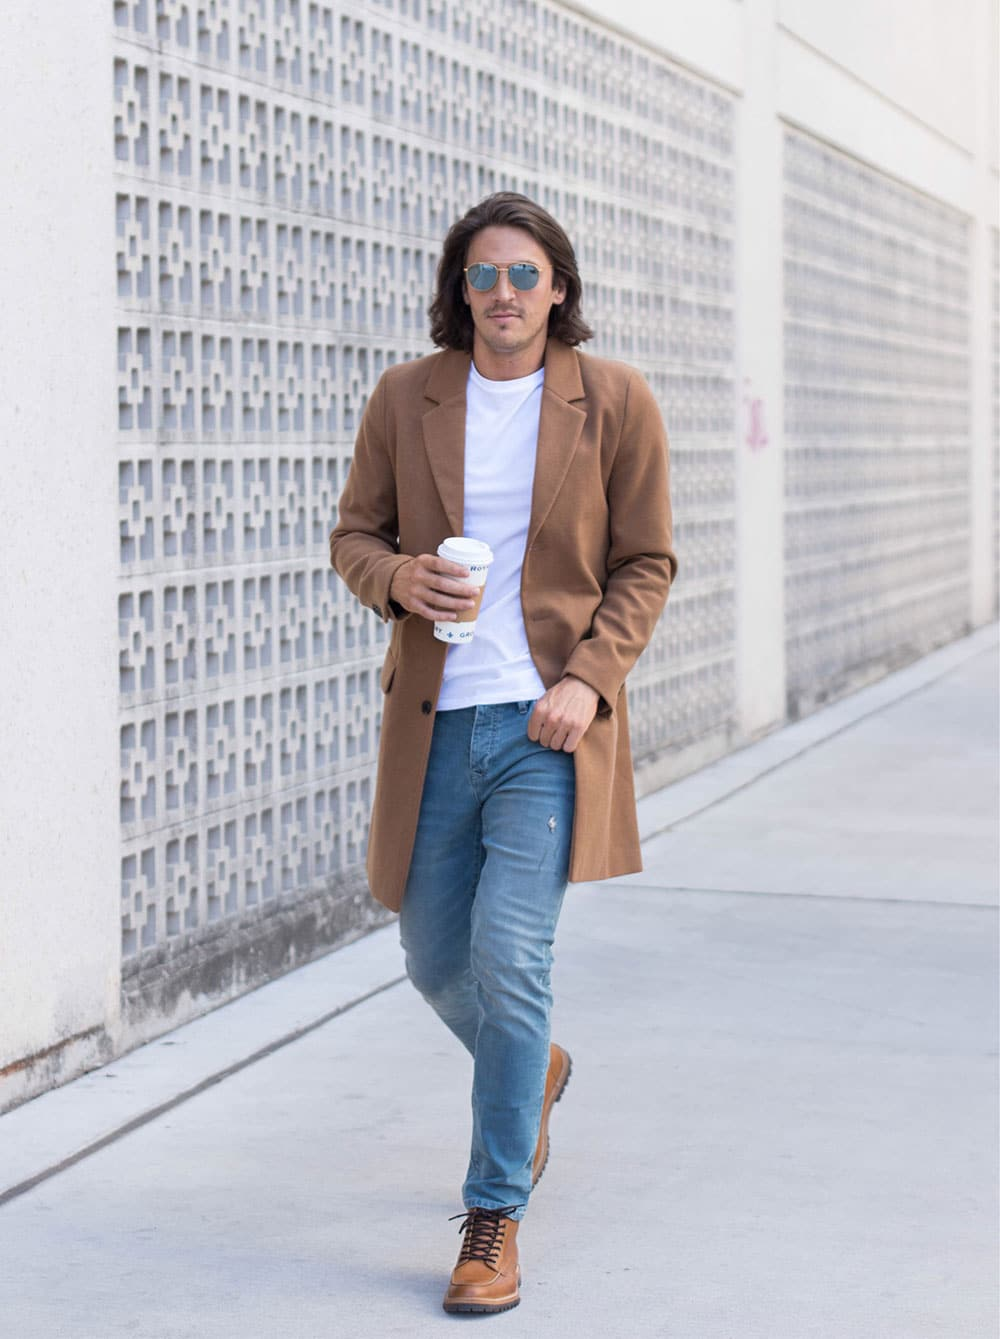 Camel Overcoat with White Tee, Jeans and Boots